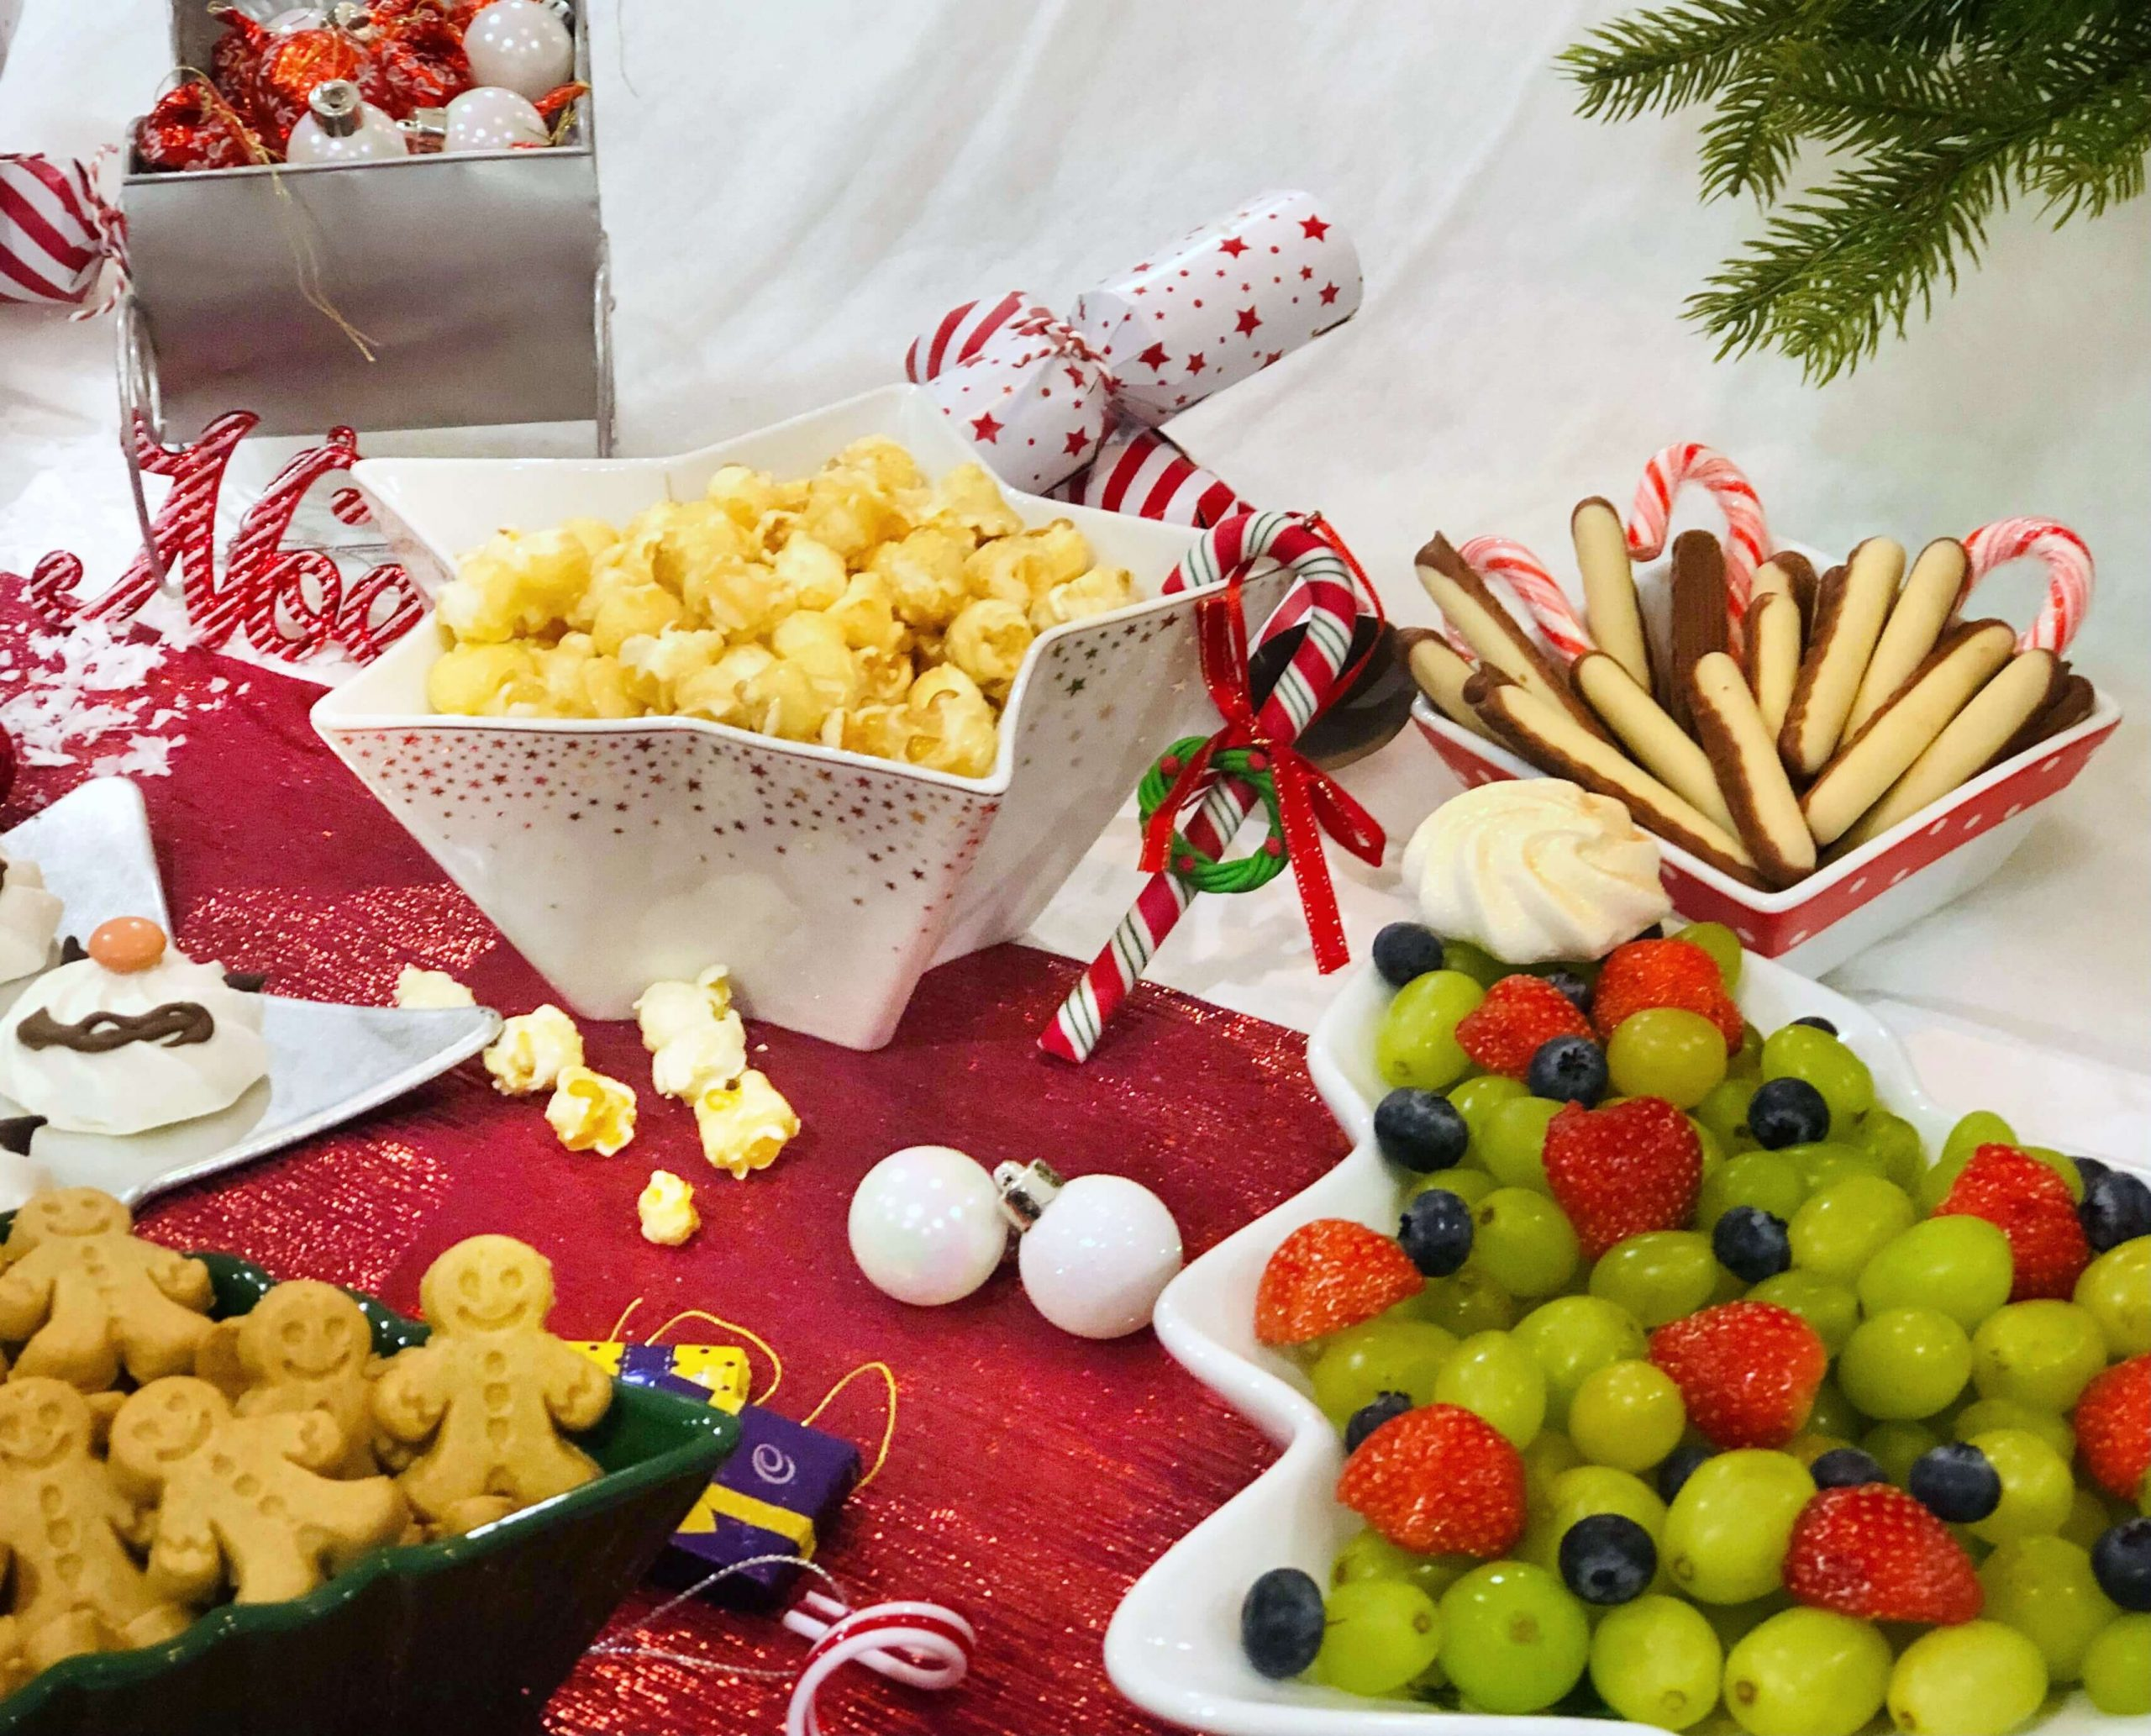 North Pole Breakfast goodies including popcorn & fruit in festive dishes